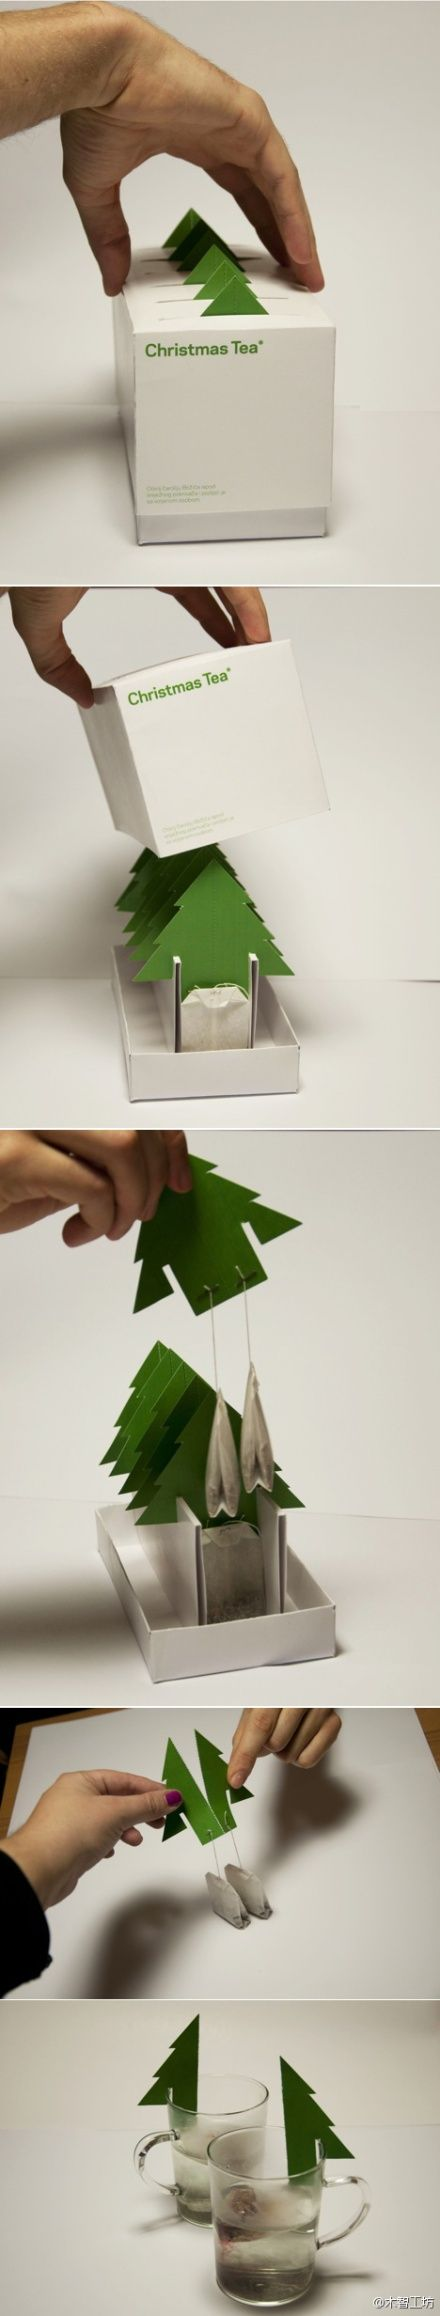 Nice tea bag product design